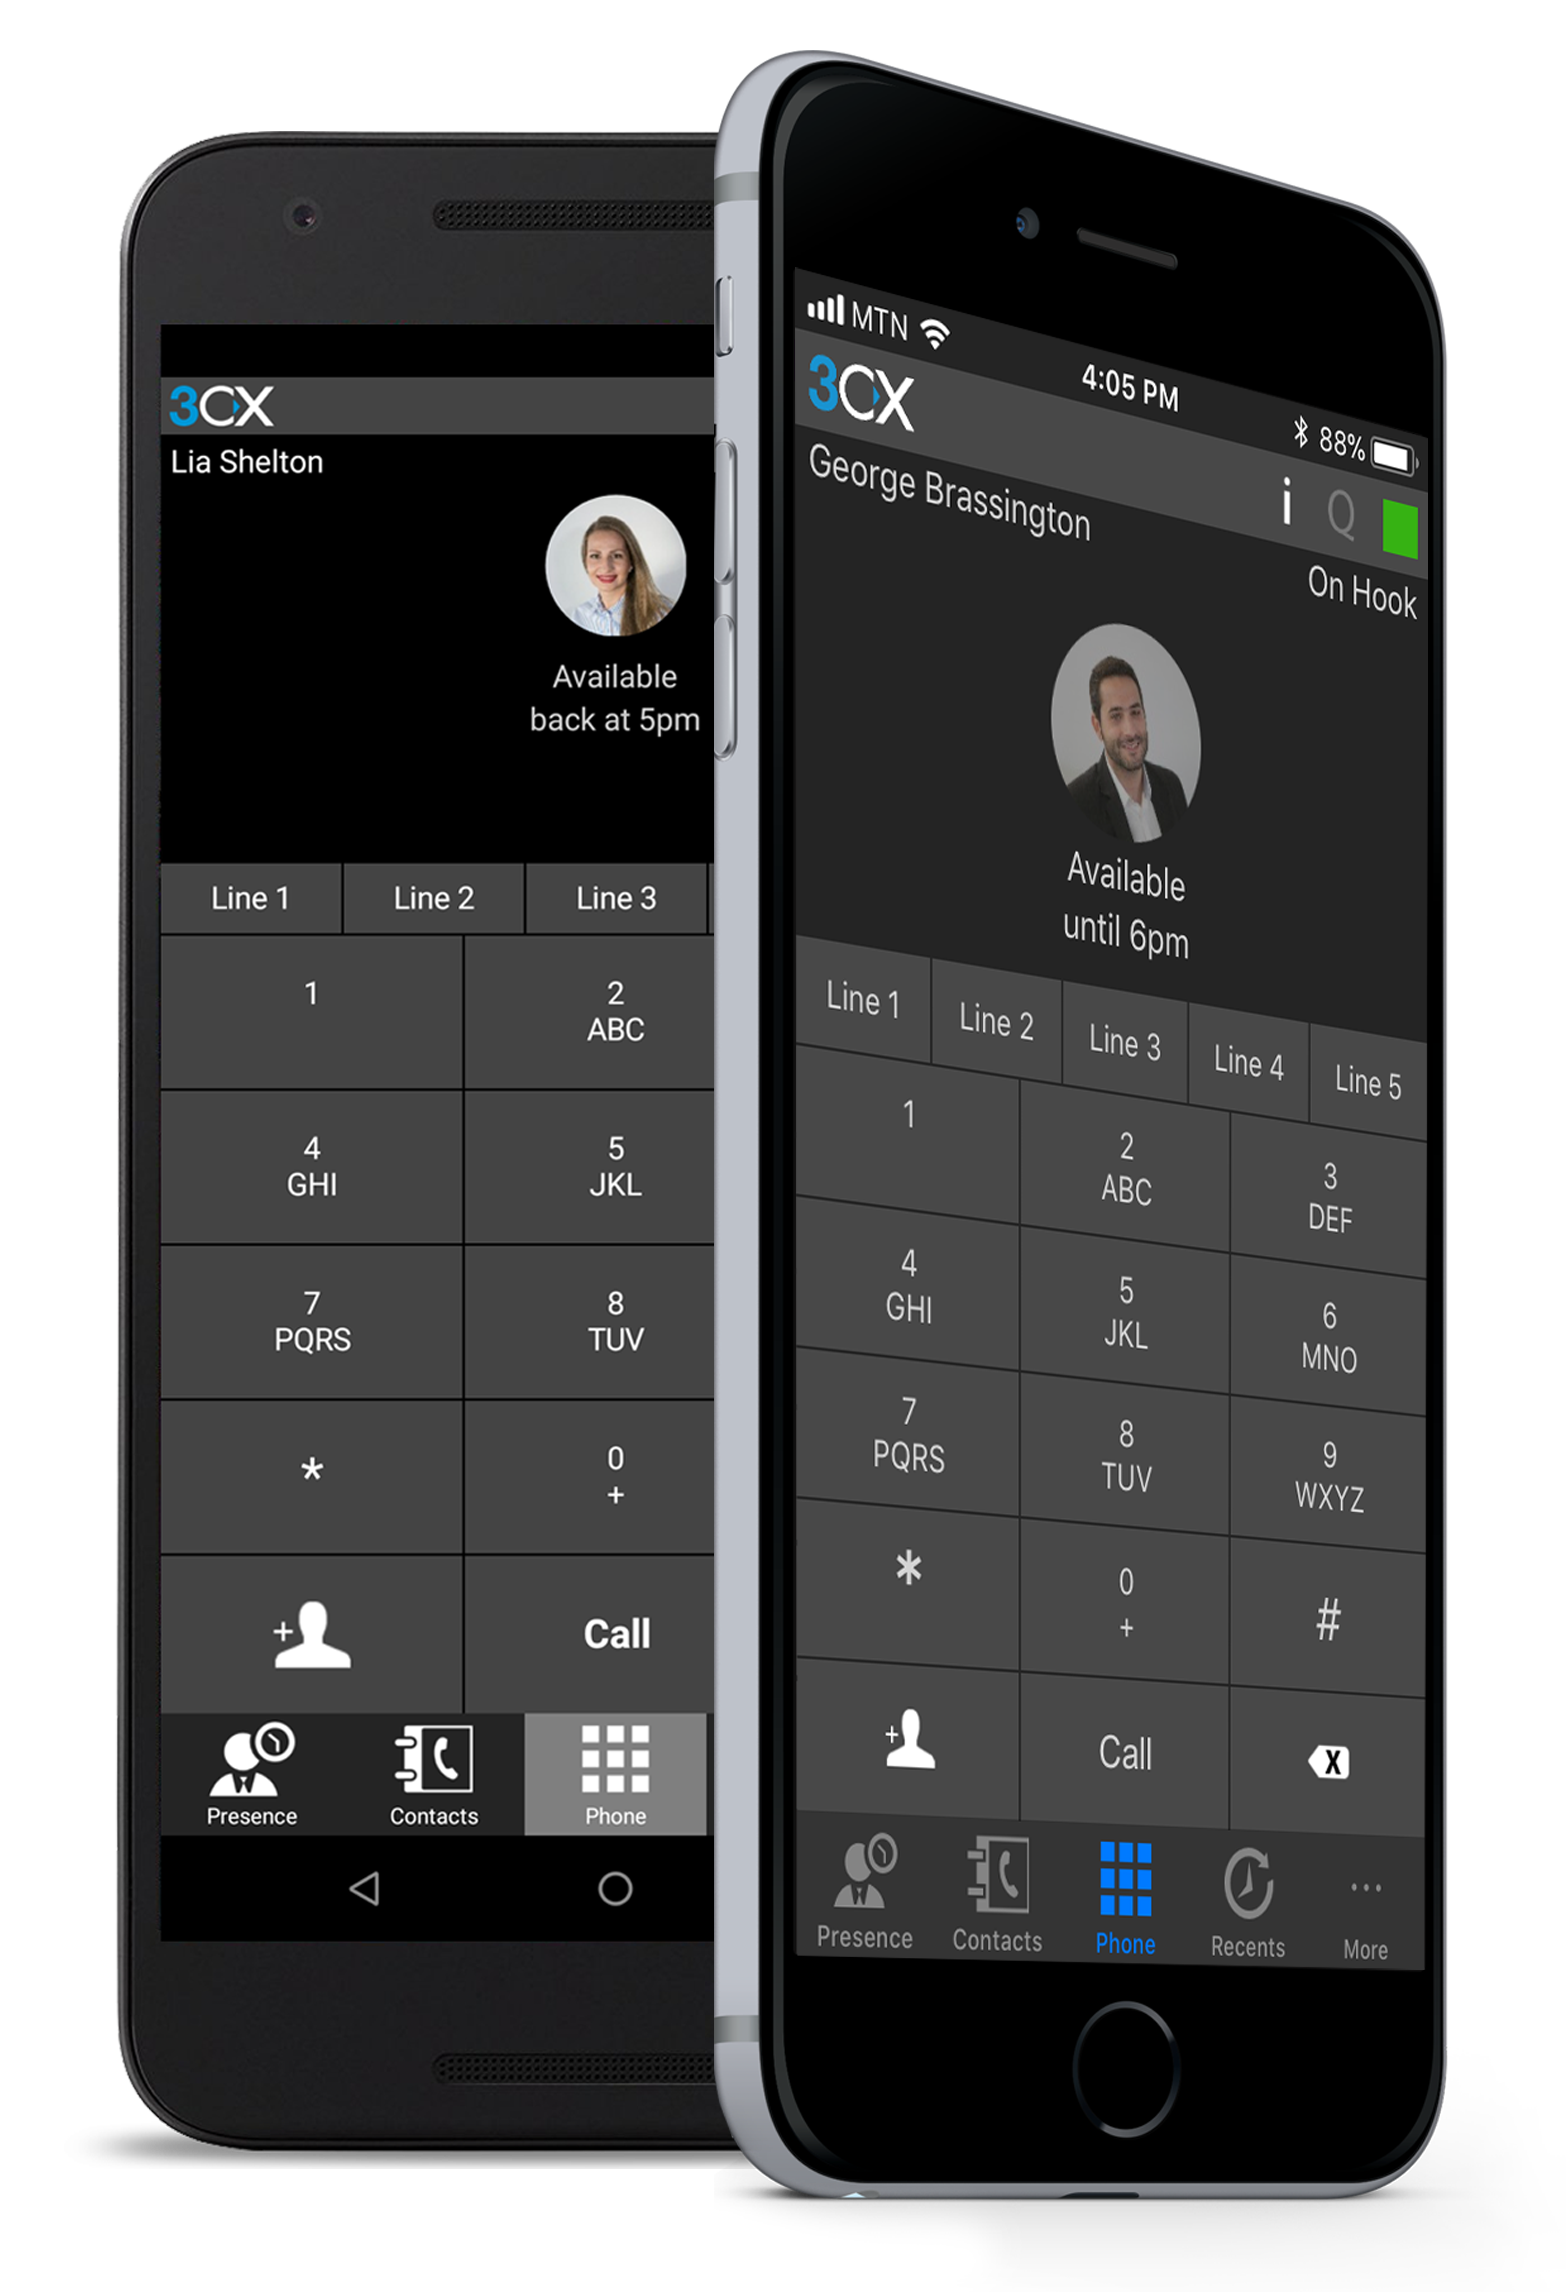 3cx ip phone system mobile application client displayed on an iphone in Maryland